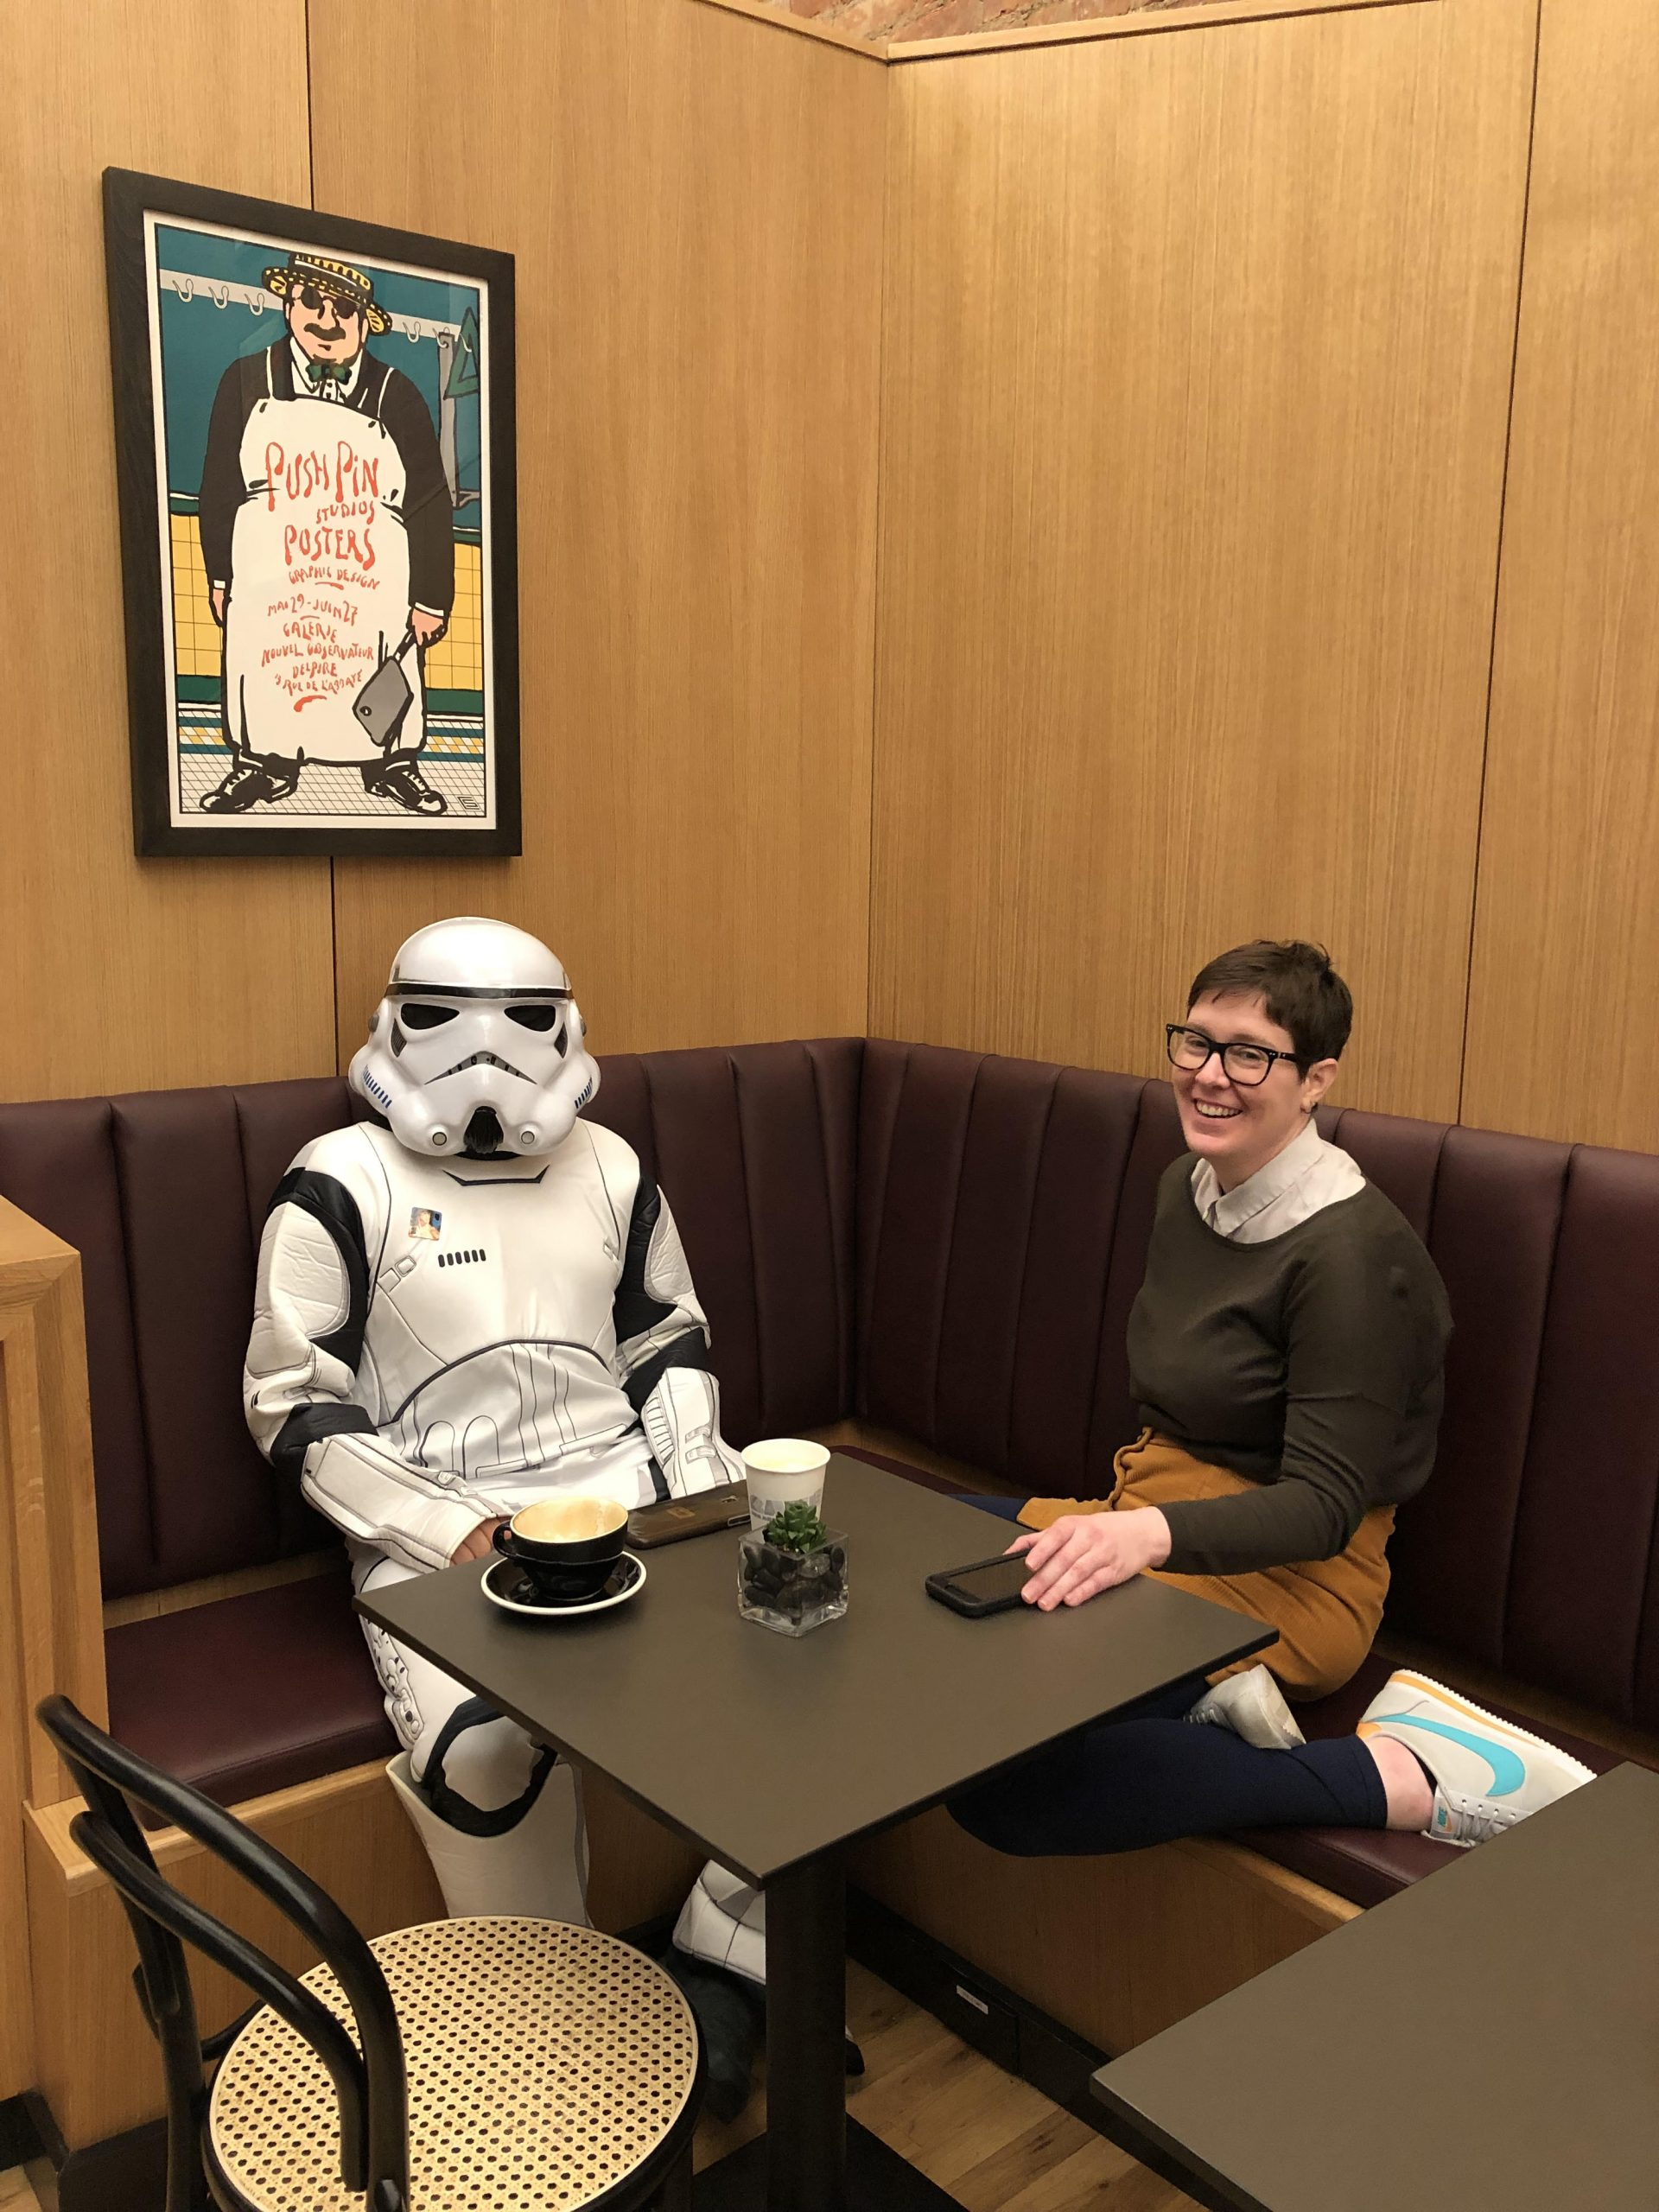 photograph of a woman and a person wearing in a Star Wars stormtrooper costume sitting in a cafe